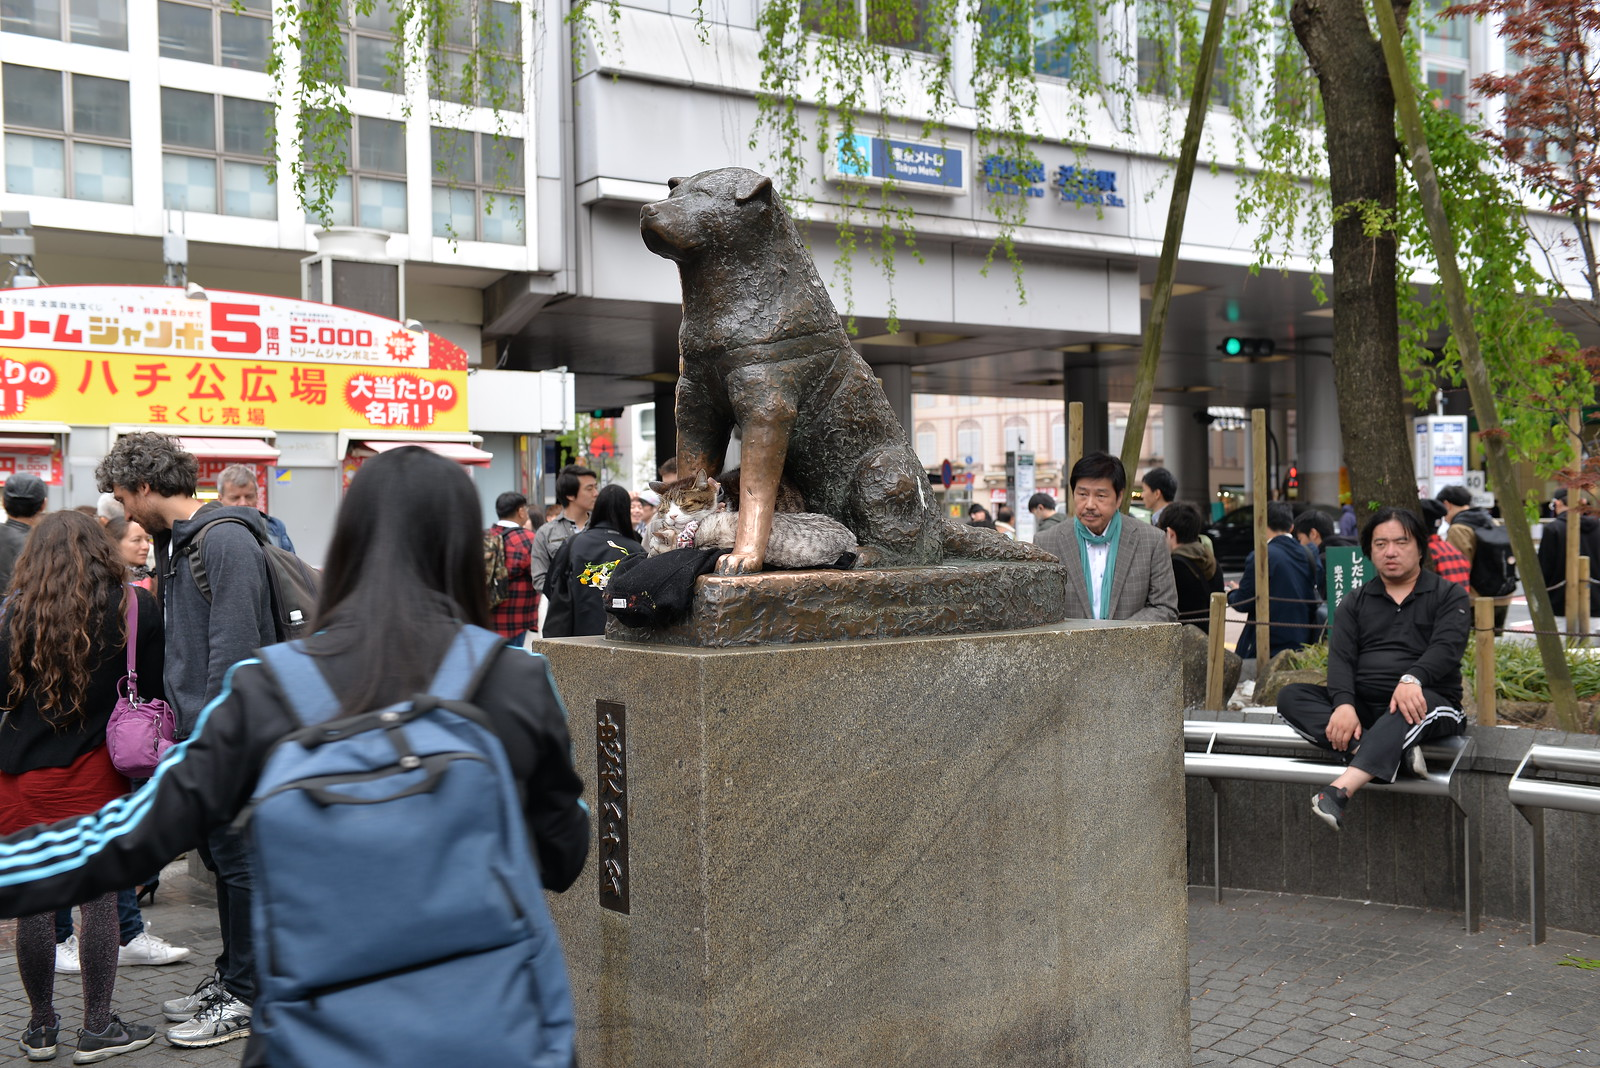 This Hachiko dog statue outside Shibuya station is very famous